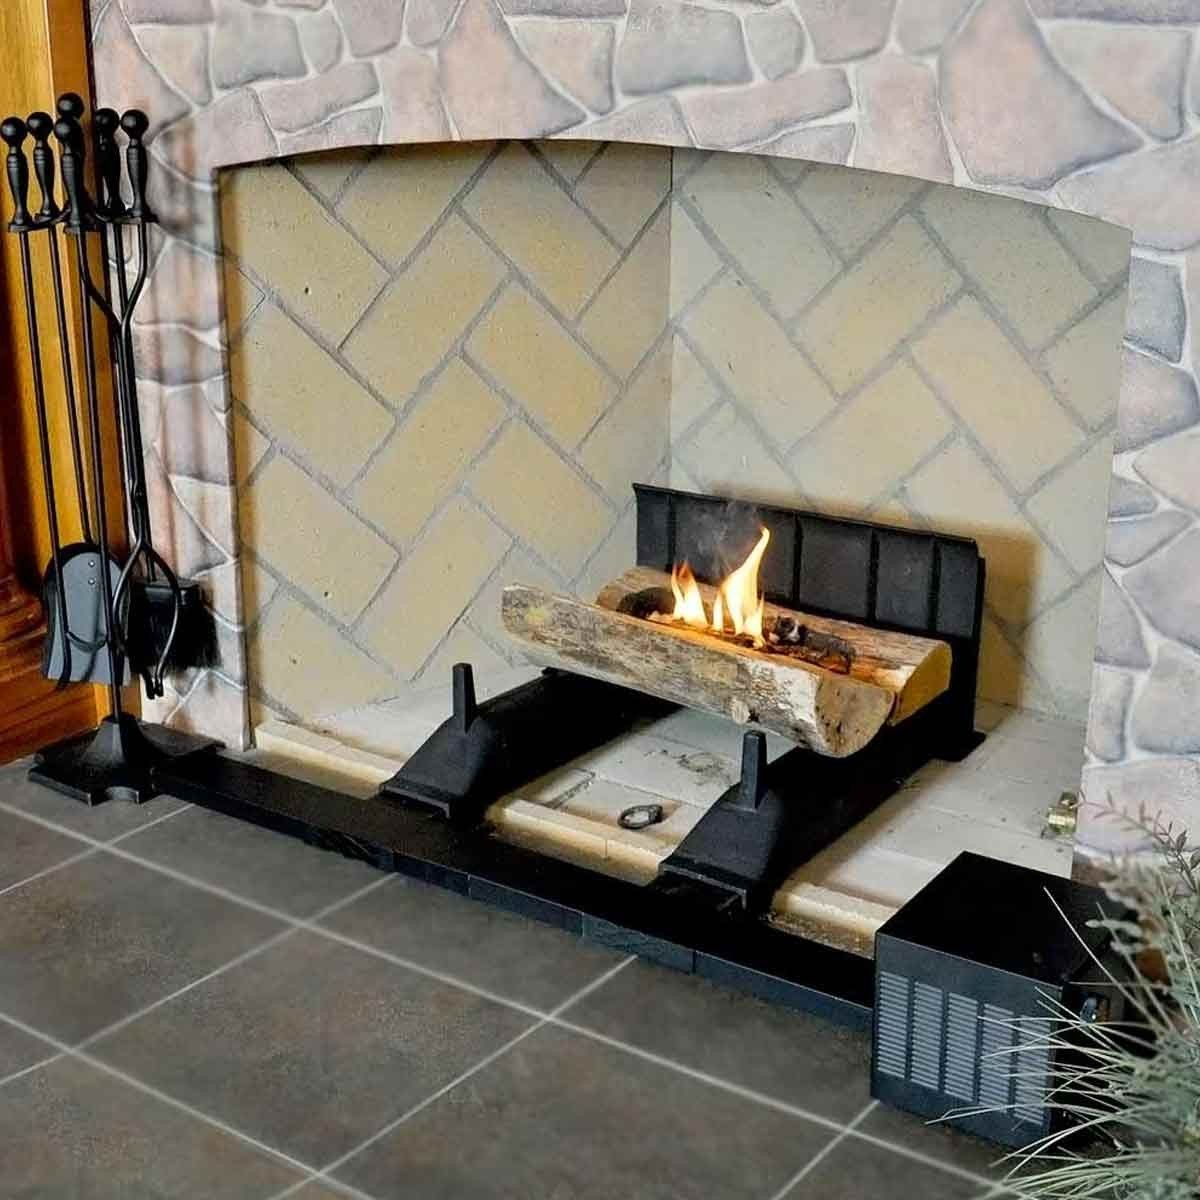 Fireplace Fans Fireplace Blowers Wood Stove Fans Woodstove Blowers Northline Express Fireplace Fan Fireplace Blower Cast Iron Fireplace